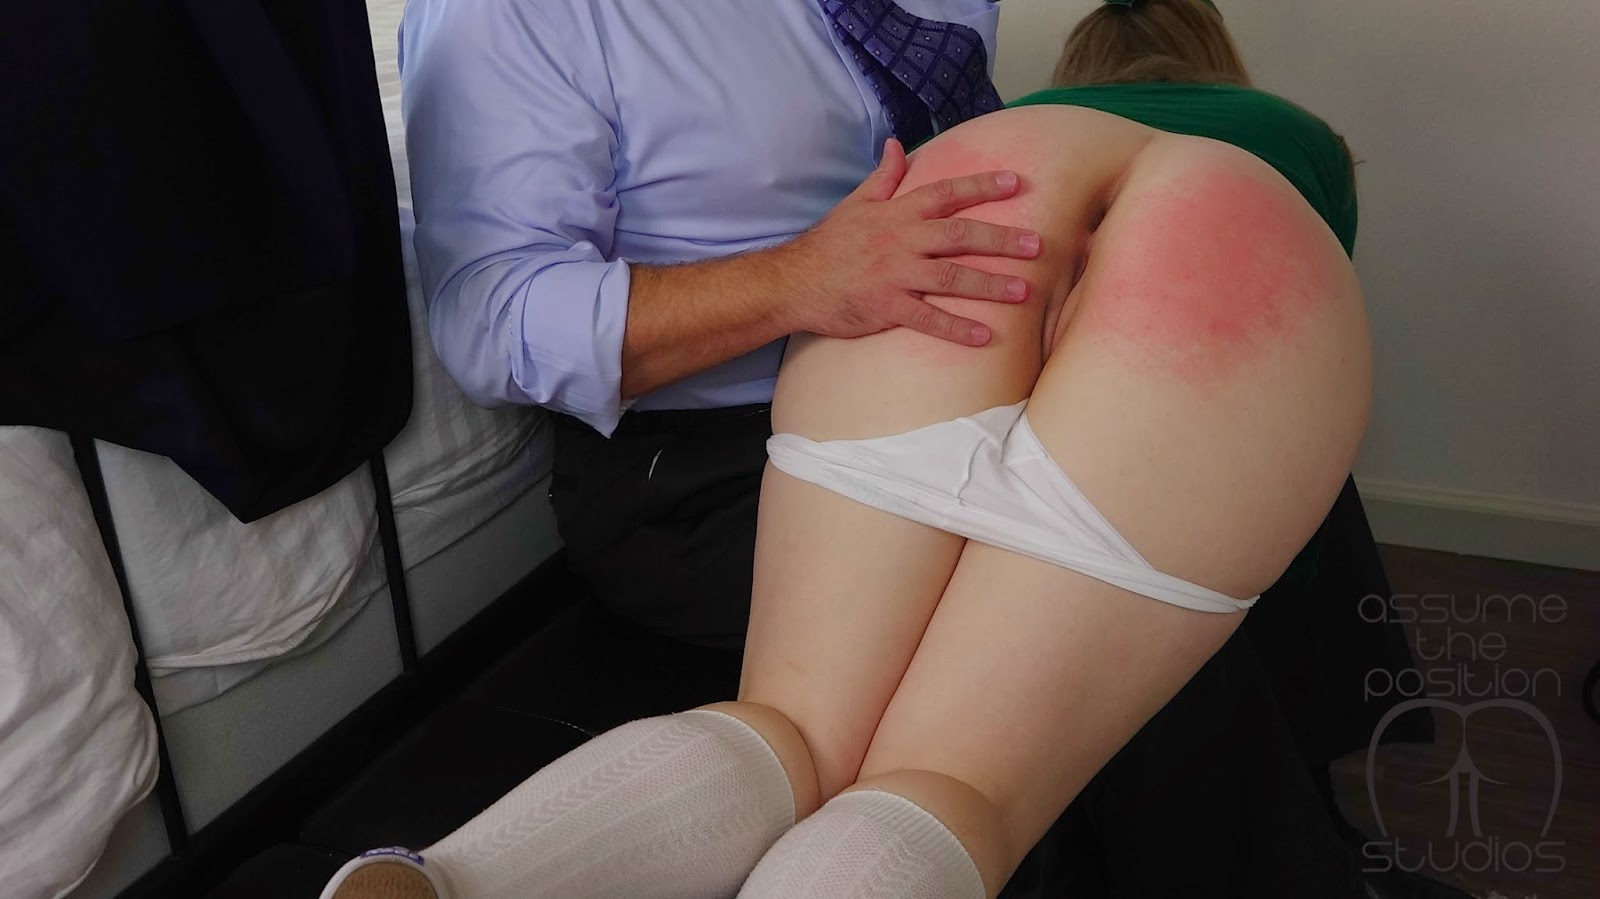 Girls Spanked Hard Videos